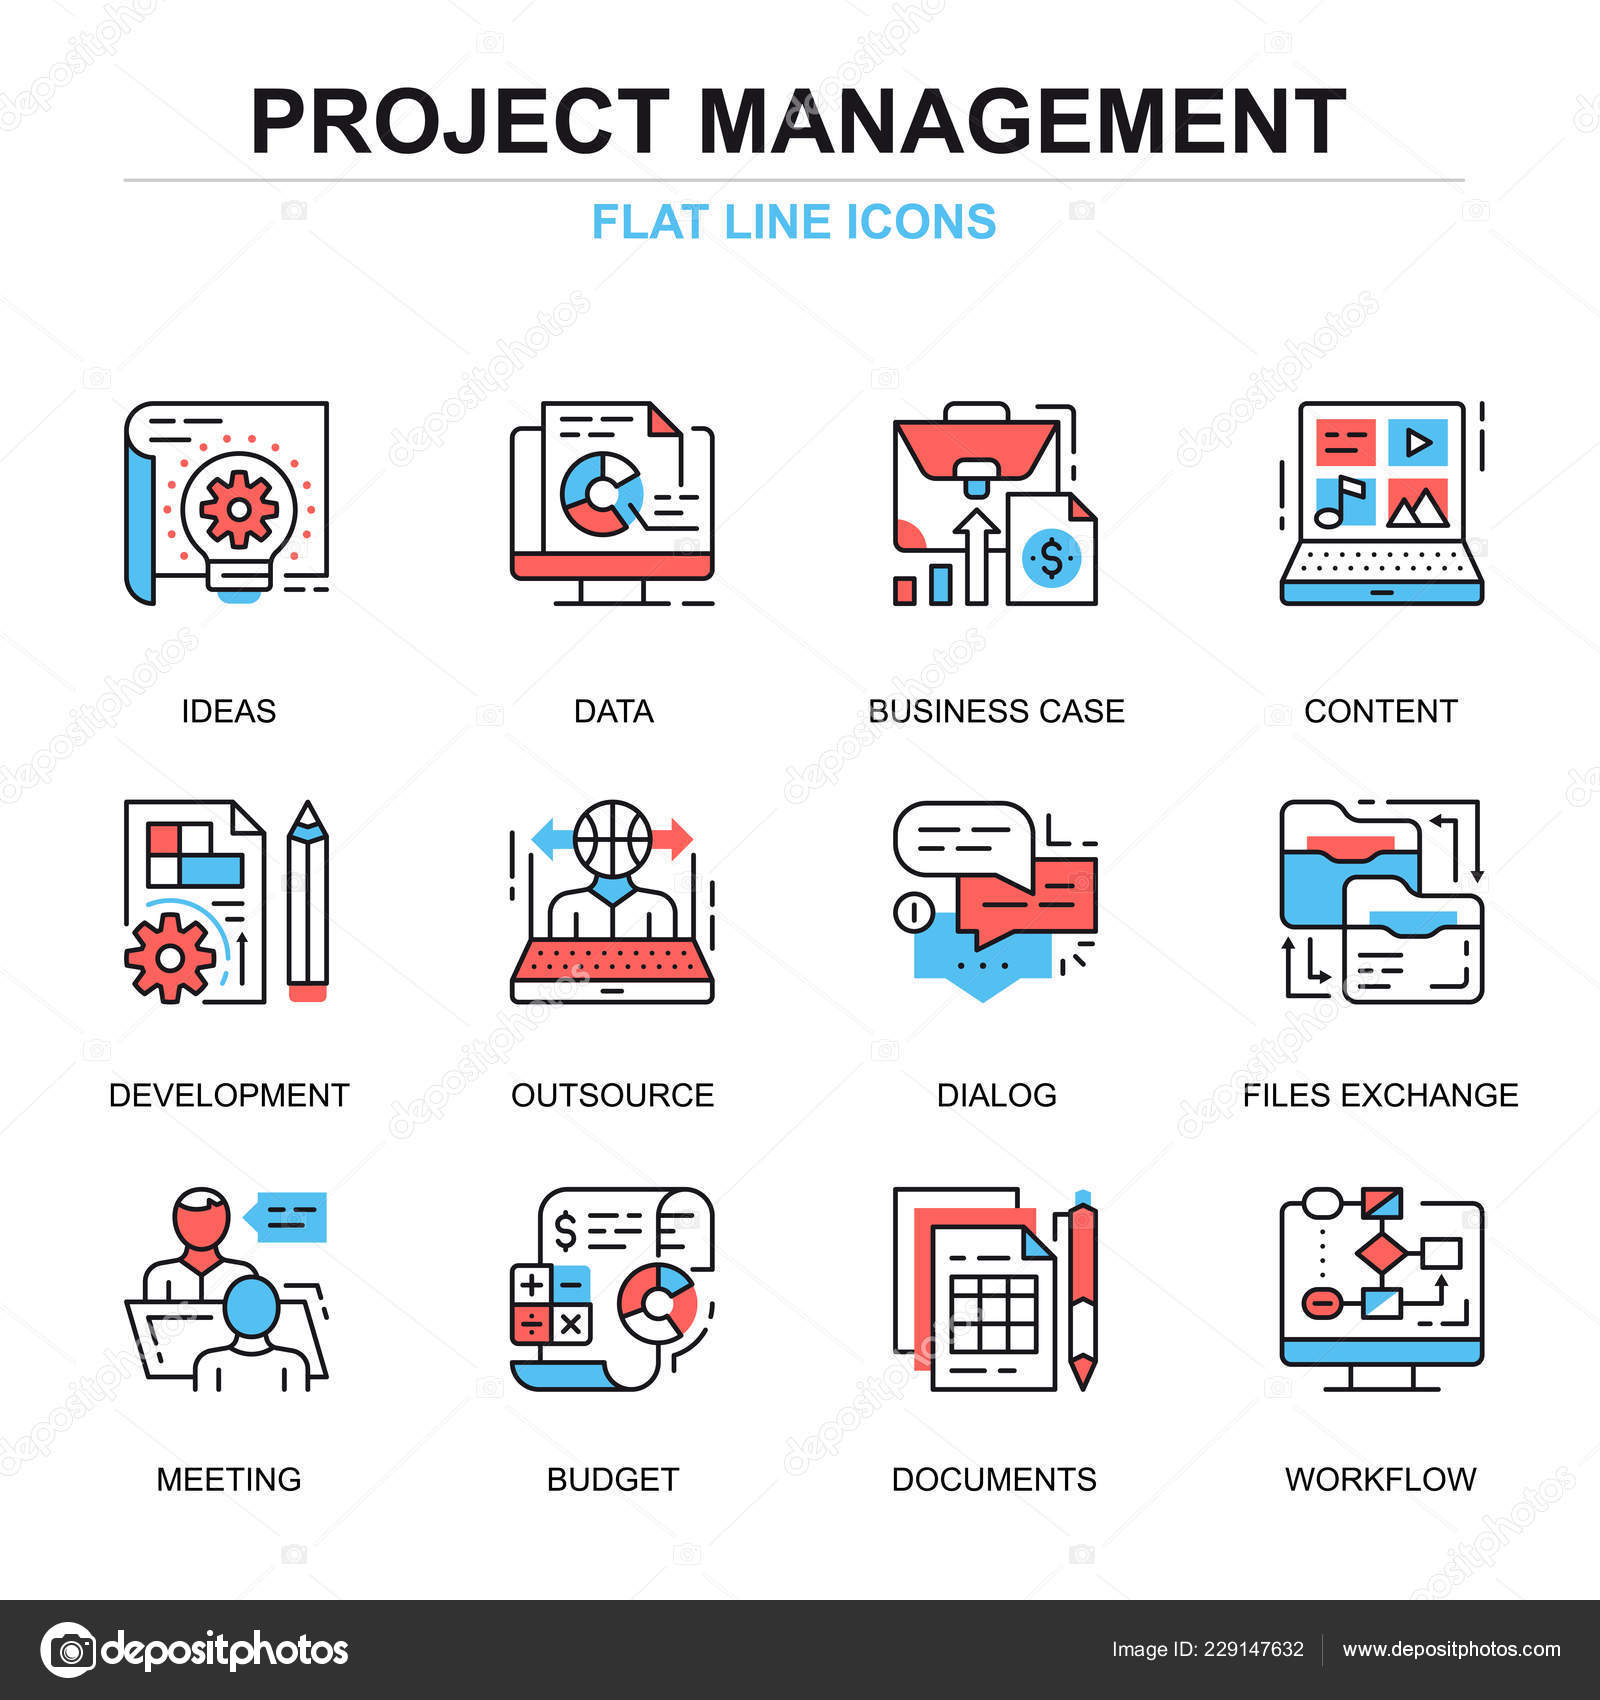 Flat Line Project Management Icons Concepts Set Website Mobile Site